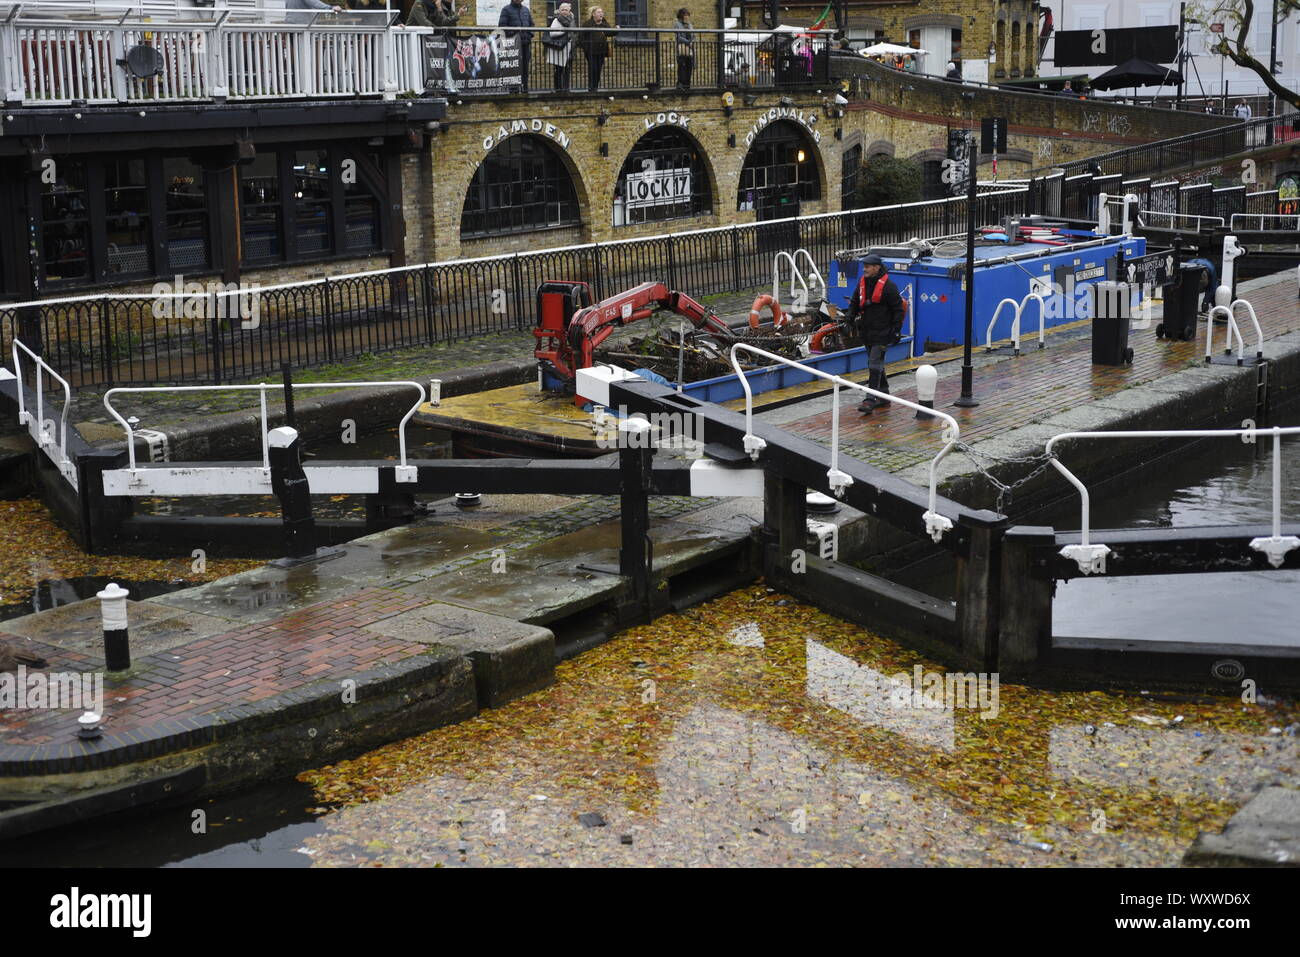 Hampstead Road Lock on The Regent's Canal in Camden Town, London. The lock gates are adjacent to the market and allow boats to ascend or descend betwe Stock Photo